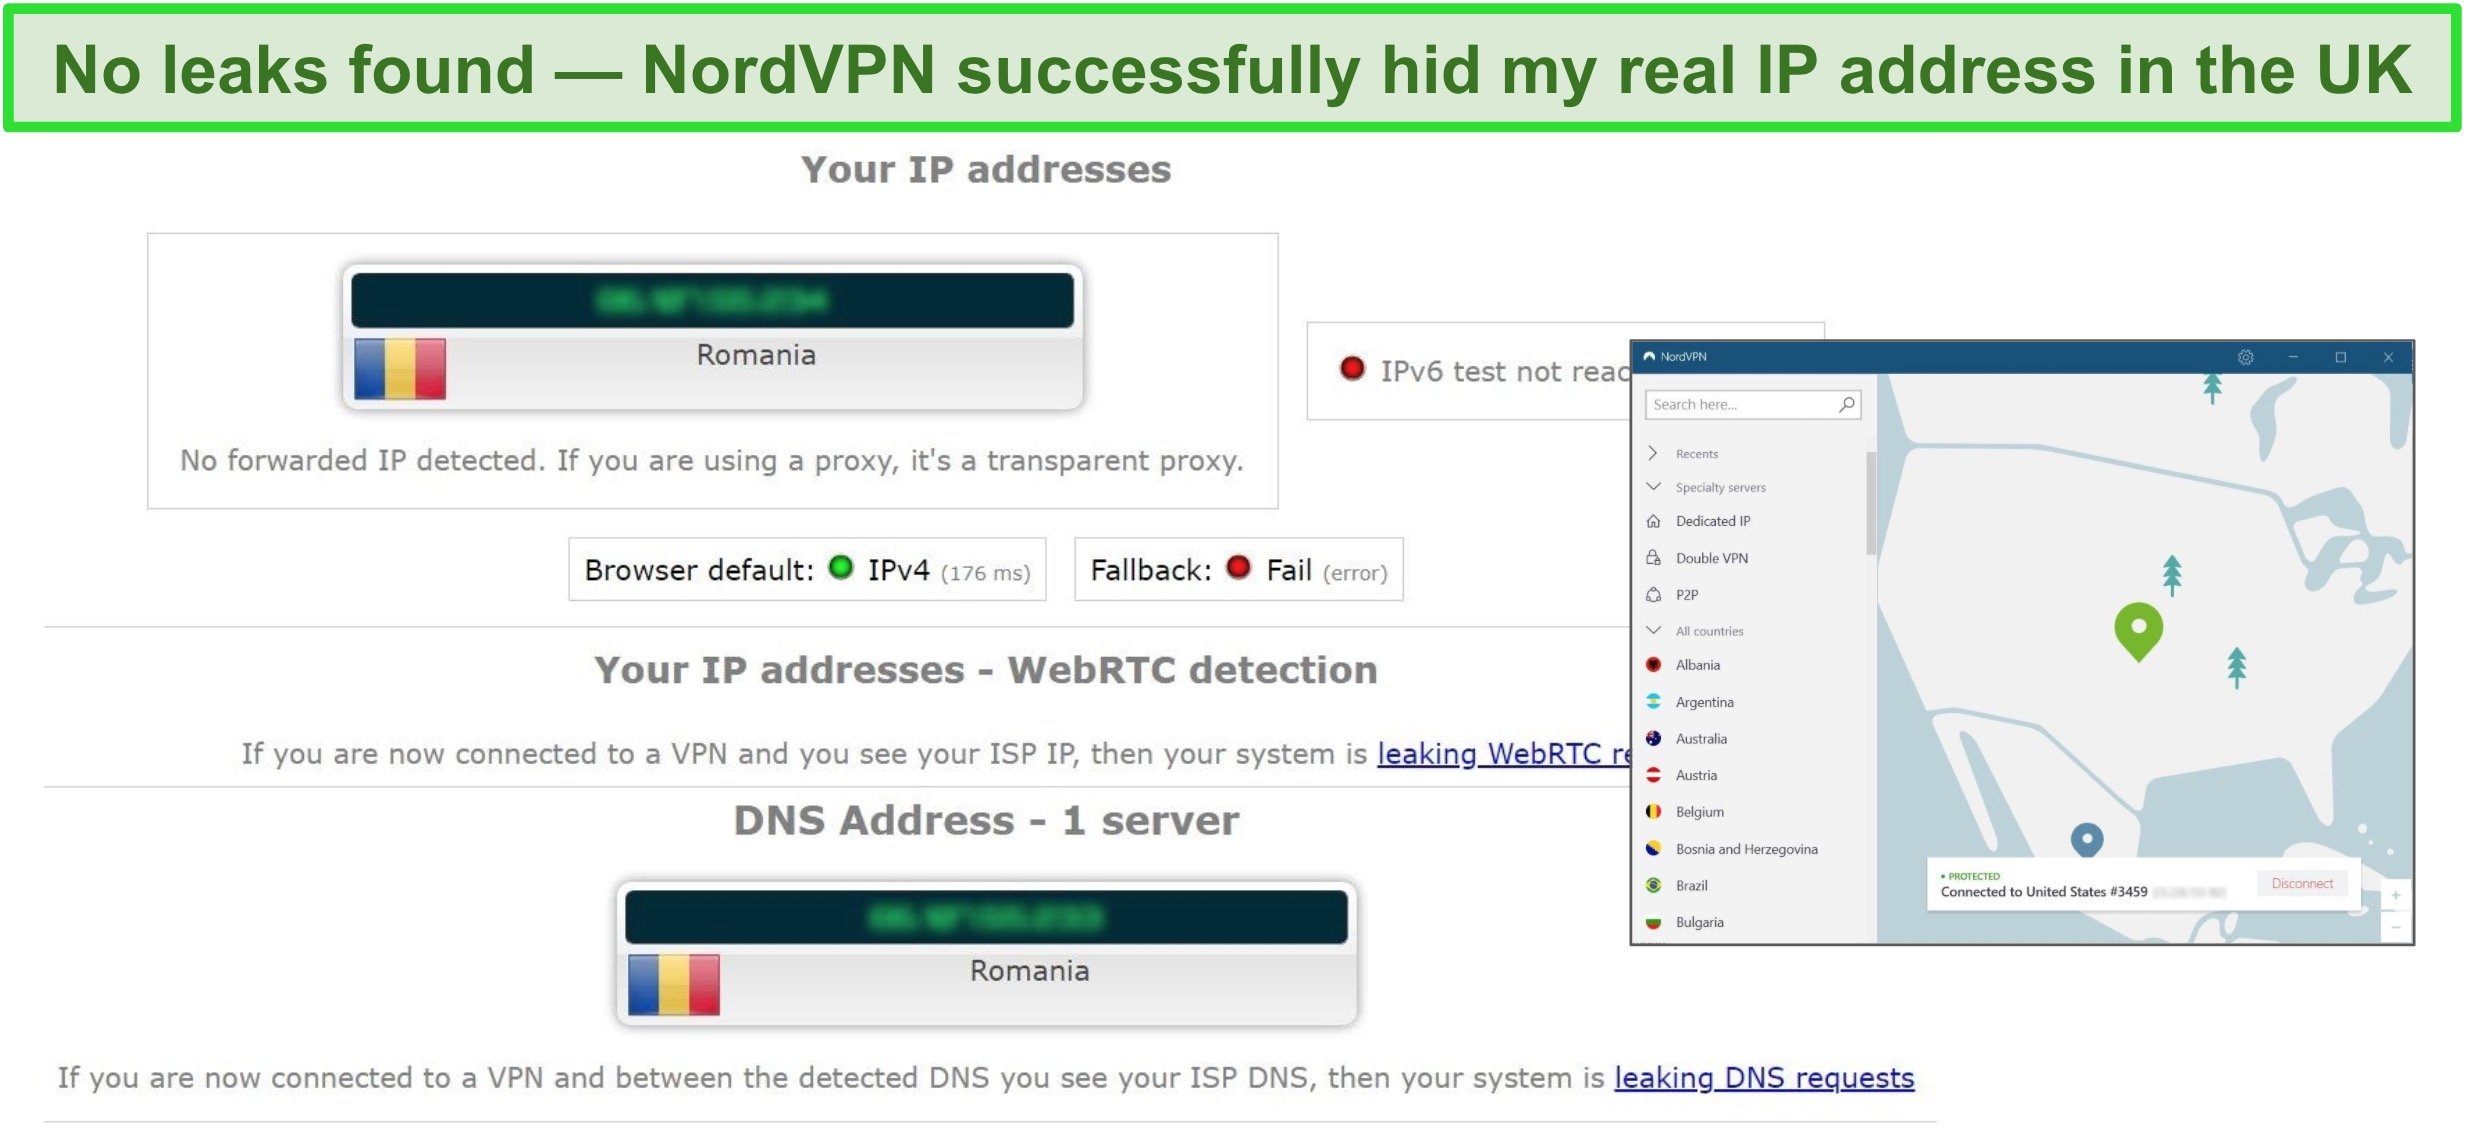 Screenshot of NordVPN successfully passing a IP, WebRTC, and DNS leak test while connected to a server in Romania